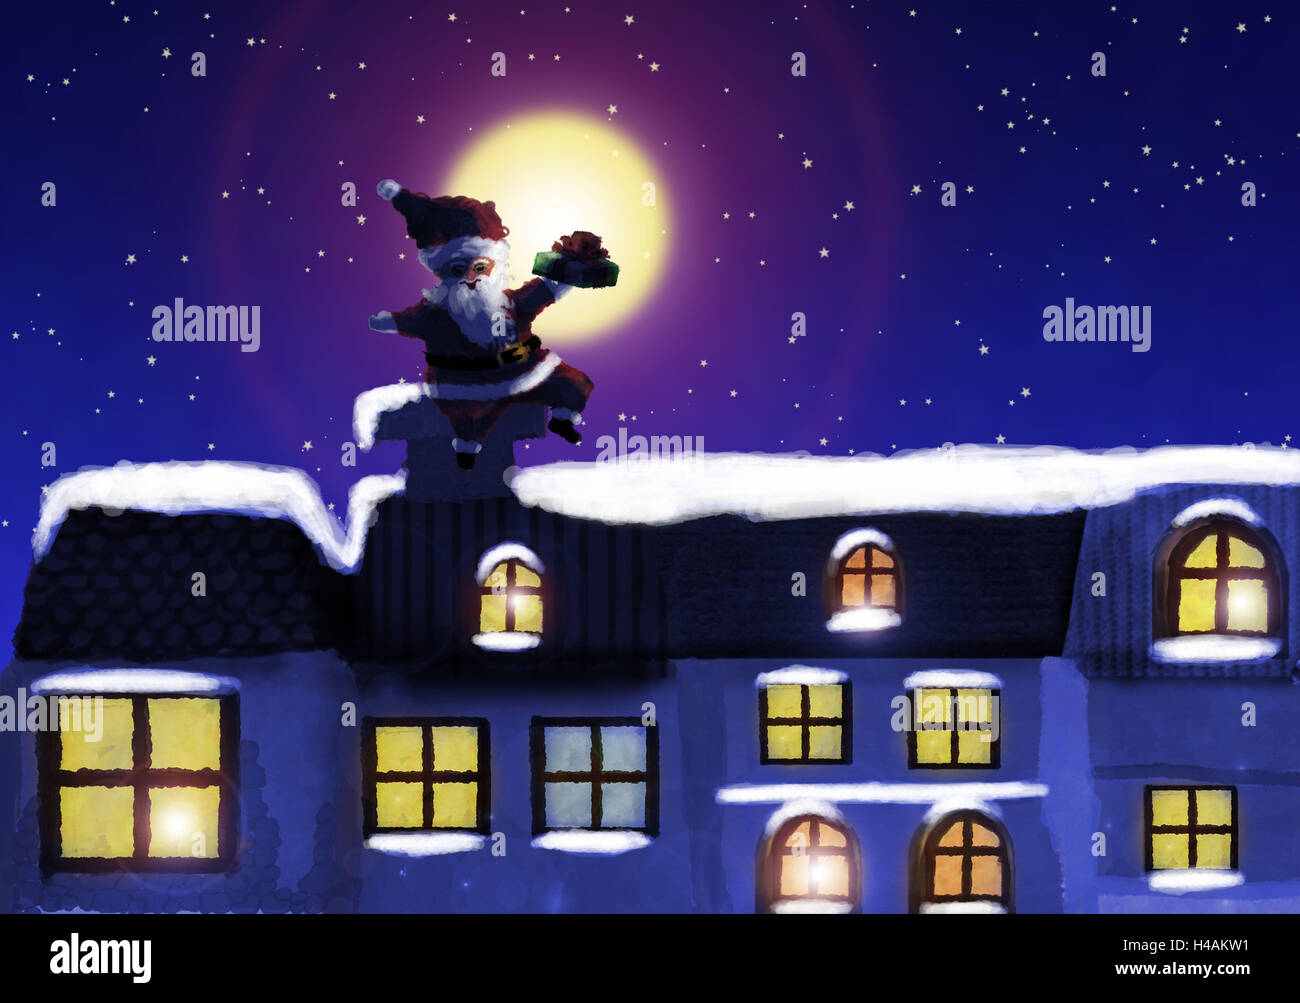 Illustration, houses, Santa, roof, sit, distribute present, evening, moon, subscription, painting, Christmas, for - Stock Image